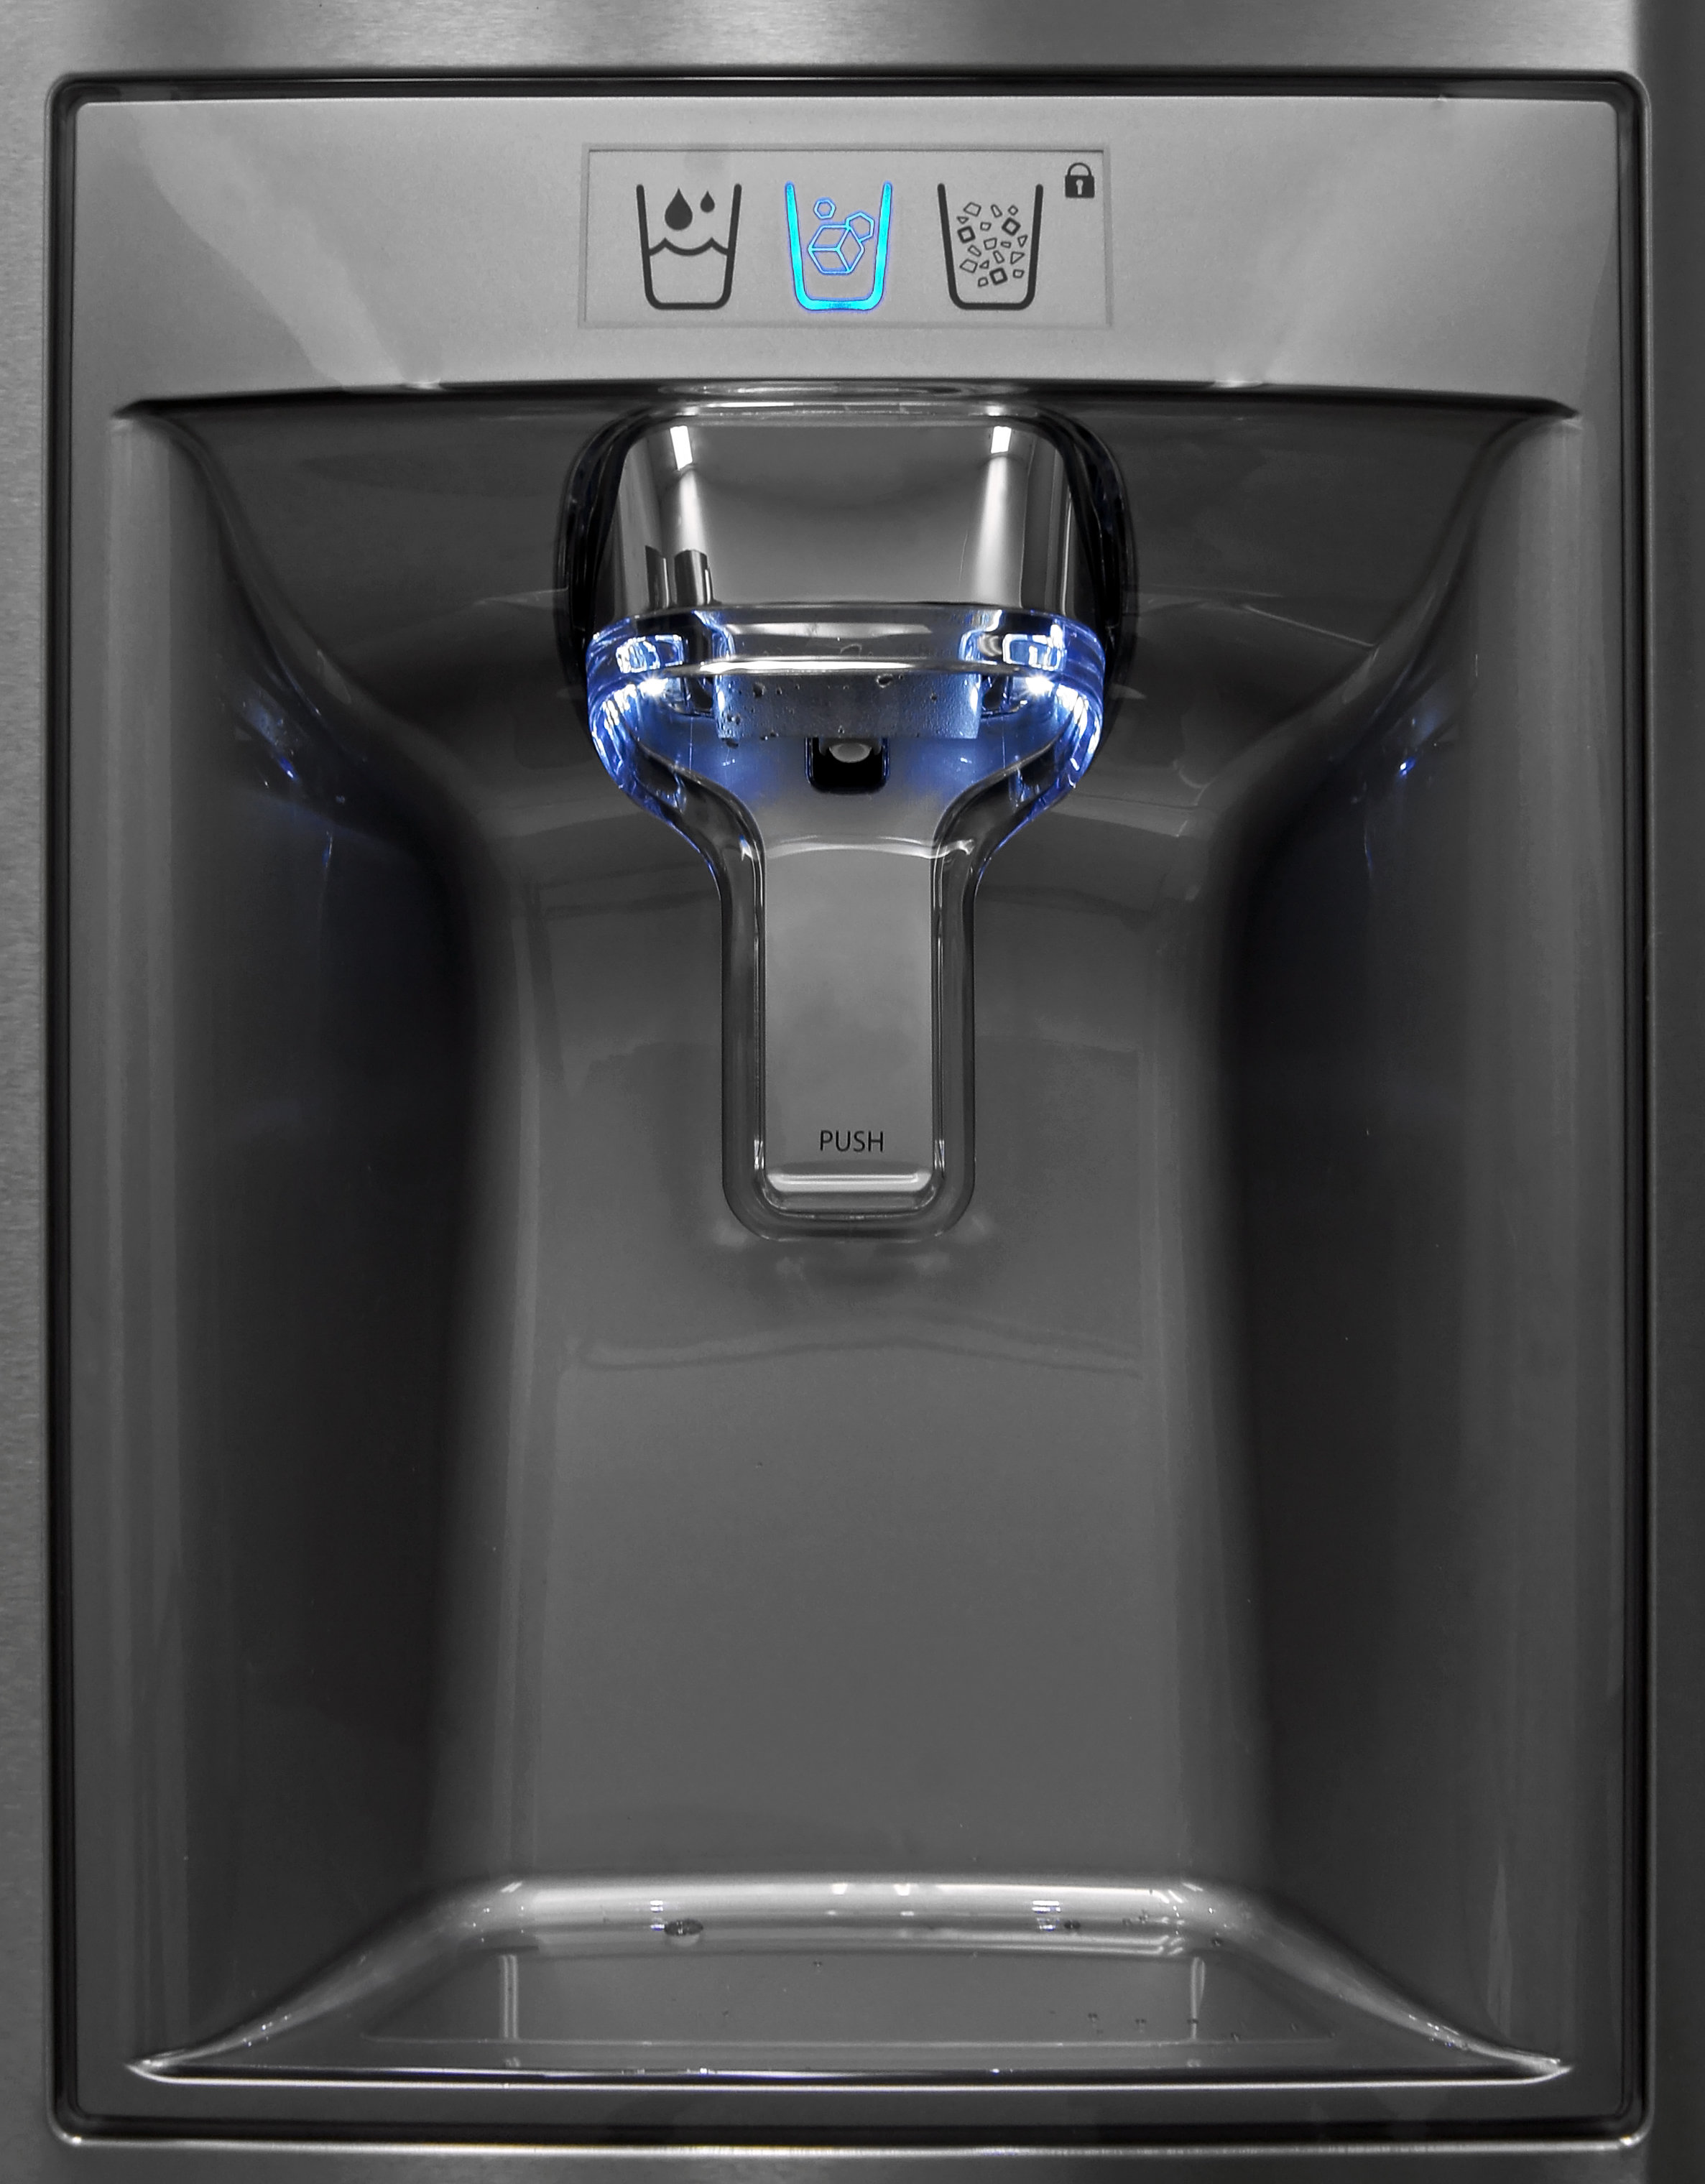 The tall dispenser's minimalist aesthetic lines up nicely with the stainless exterior of the Kenmore Elite 74033.